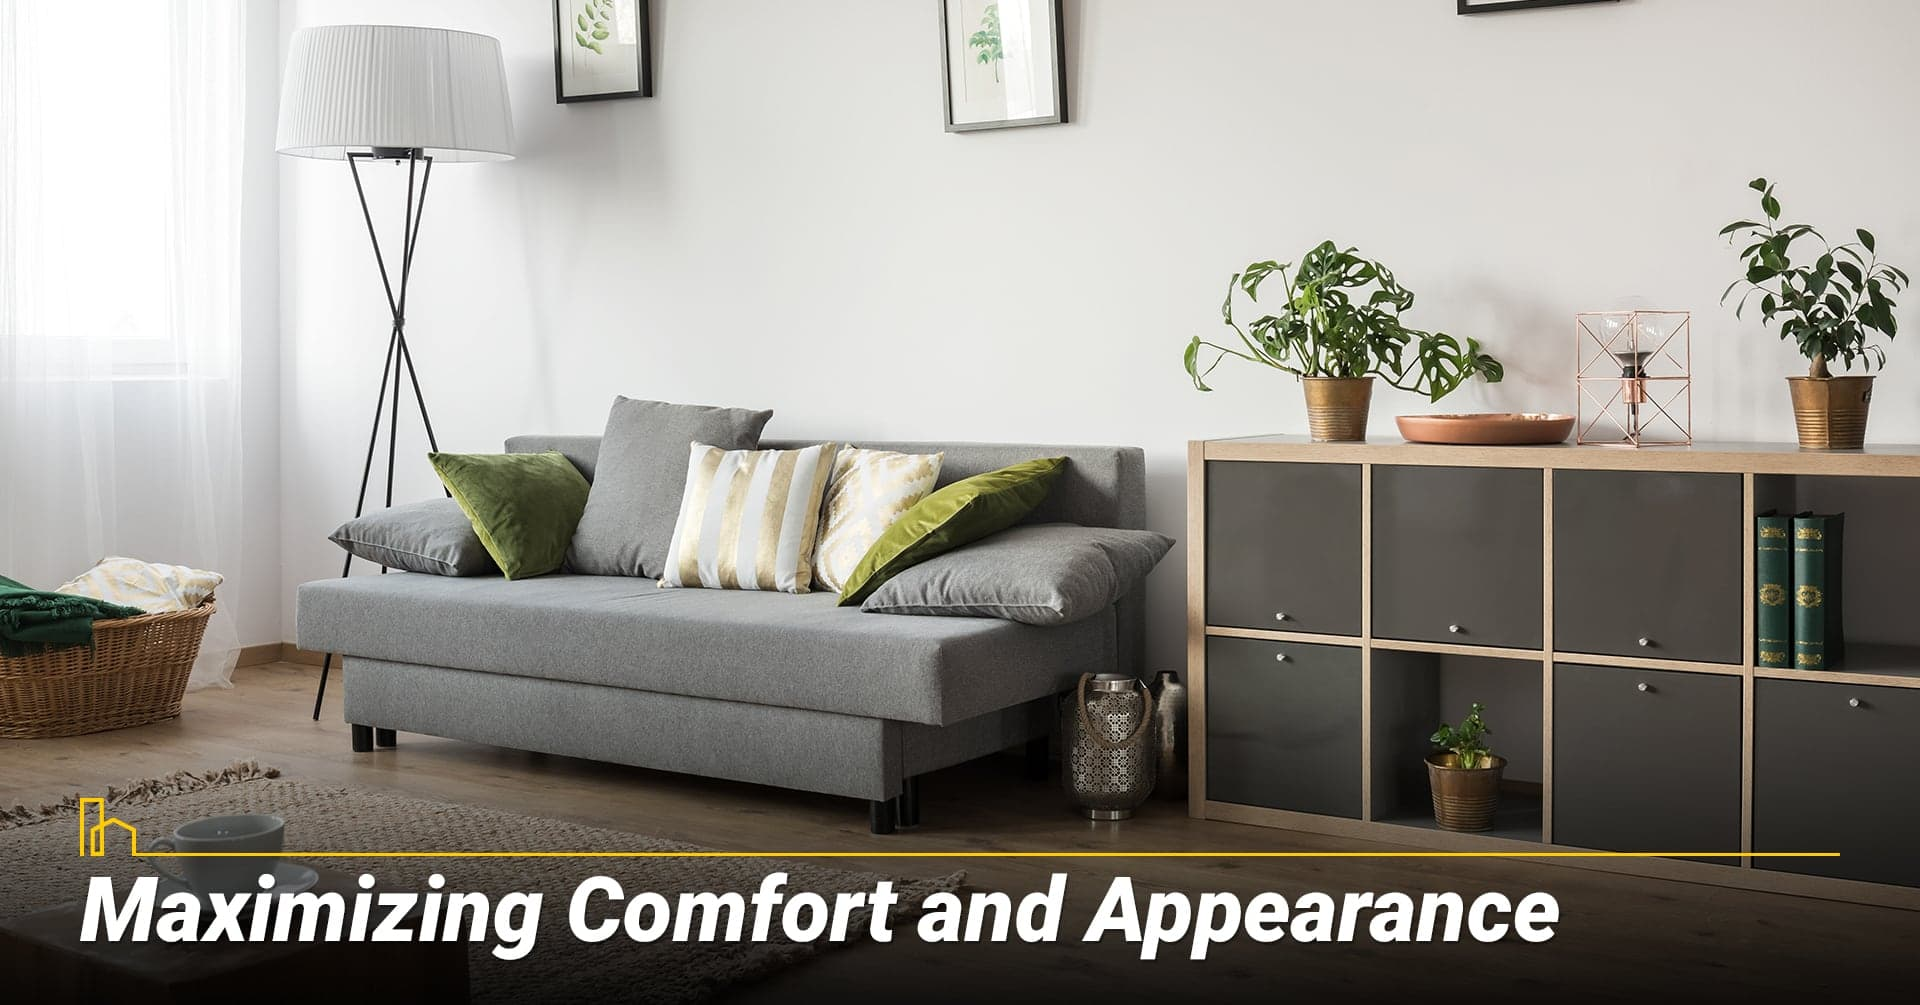 Maximizing Comfort and Appearance, design for beauty and comfort